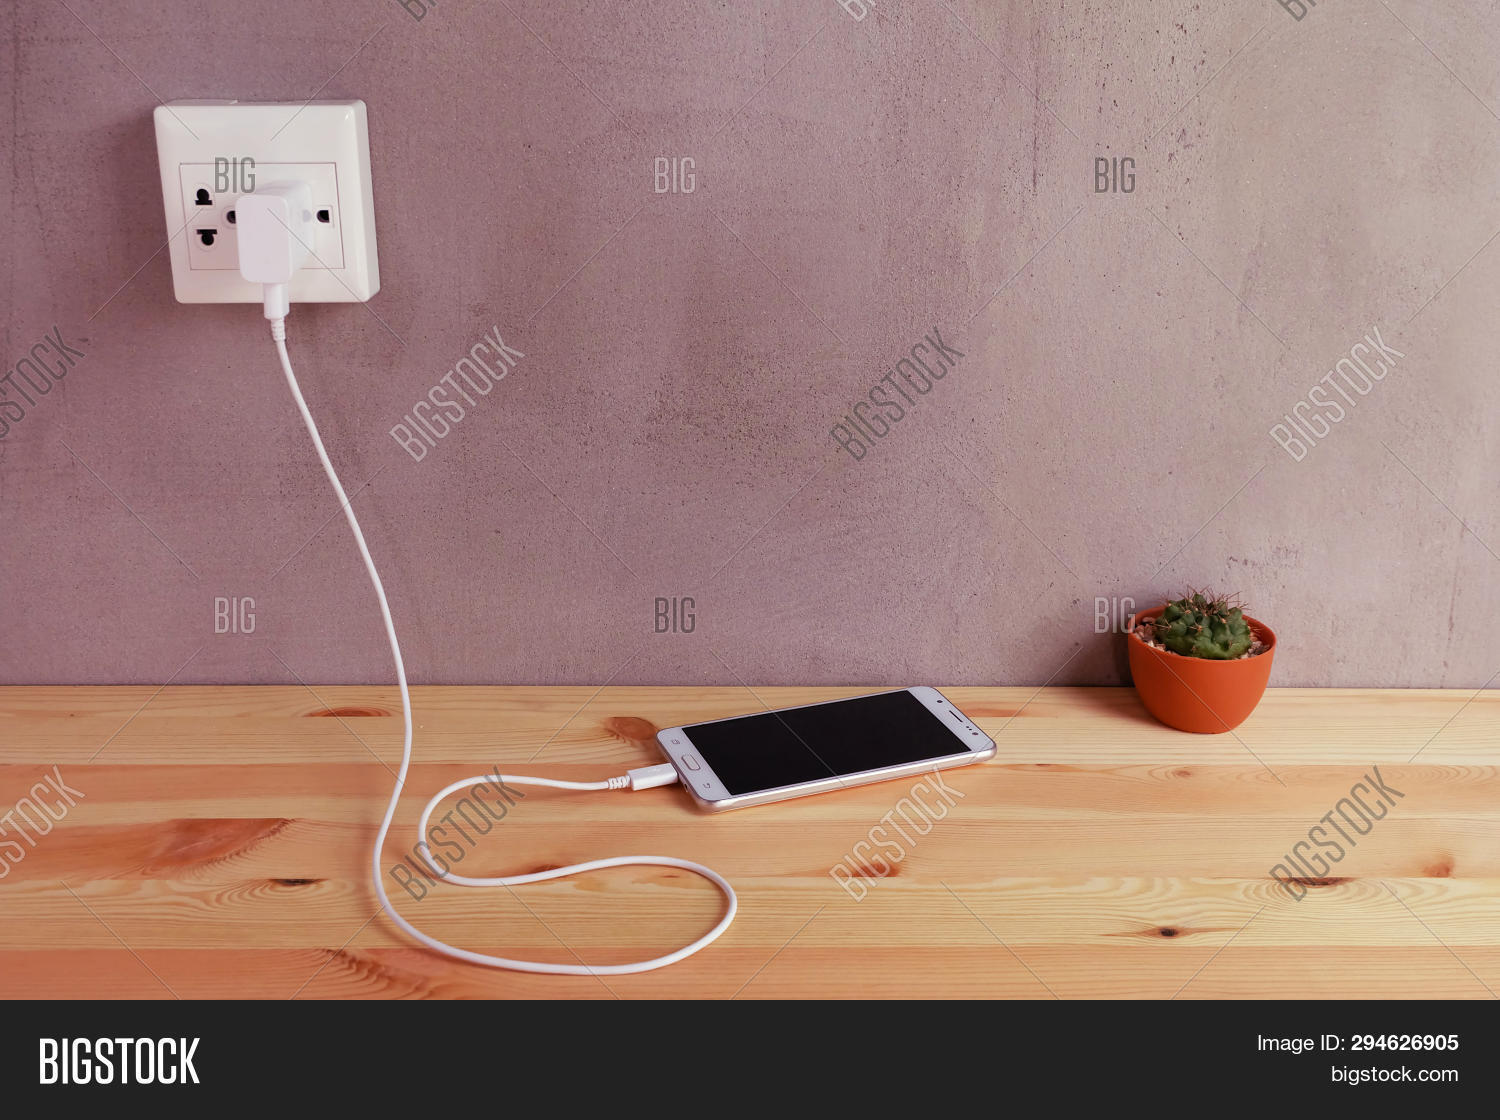 hight resolution of plug in power outlet adapter cord charger of mobile phone on wooden floor